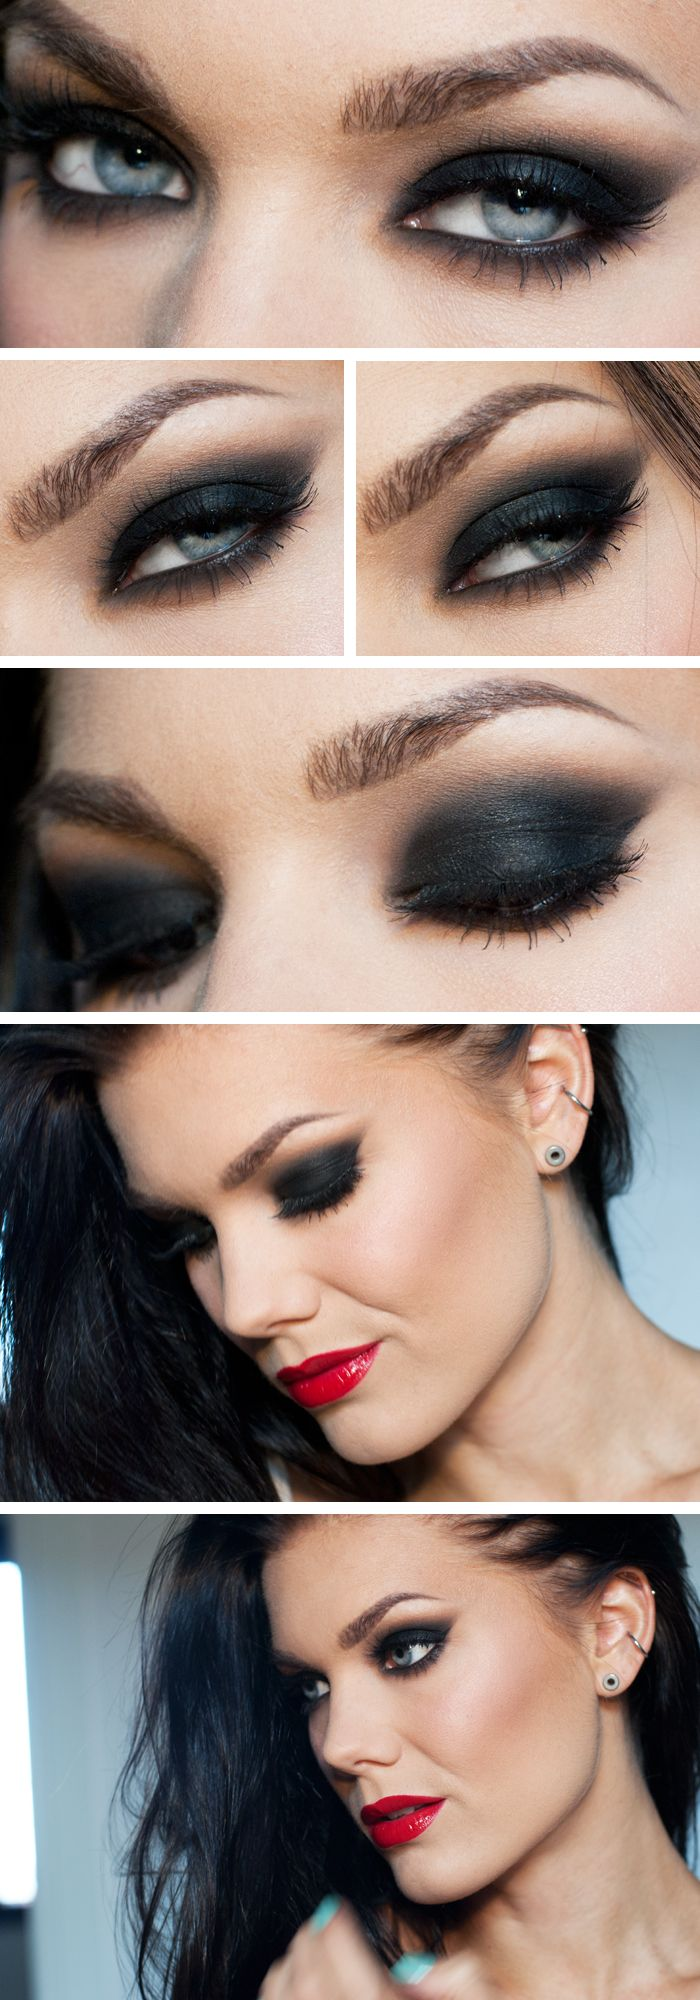 Eyeshadow Tutorial Videos: Best Smokey Eye Makeup Tutorial Step By Step Ideas With